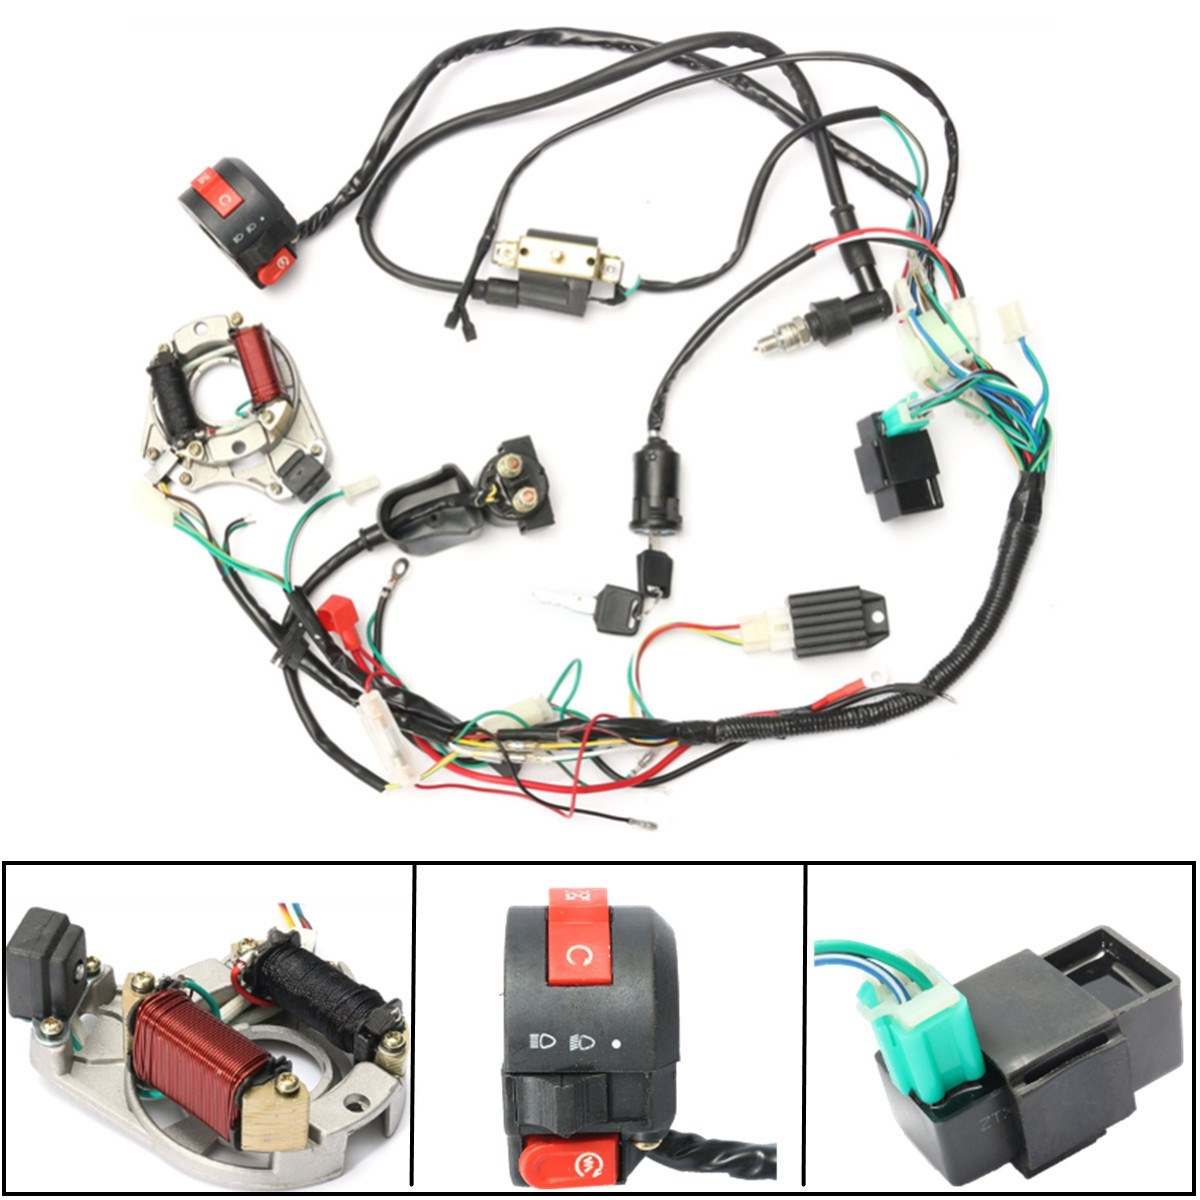 small resolution of 50 70 90 110cc cdi wire harness assembly wiring kit set for atv hanma 110 atv wiring diagram 110 atv wiring harness